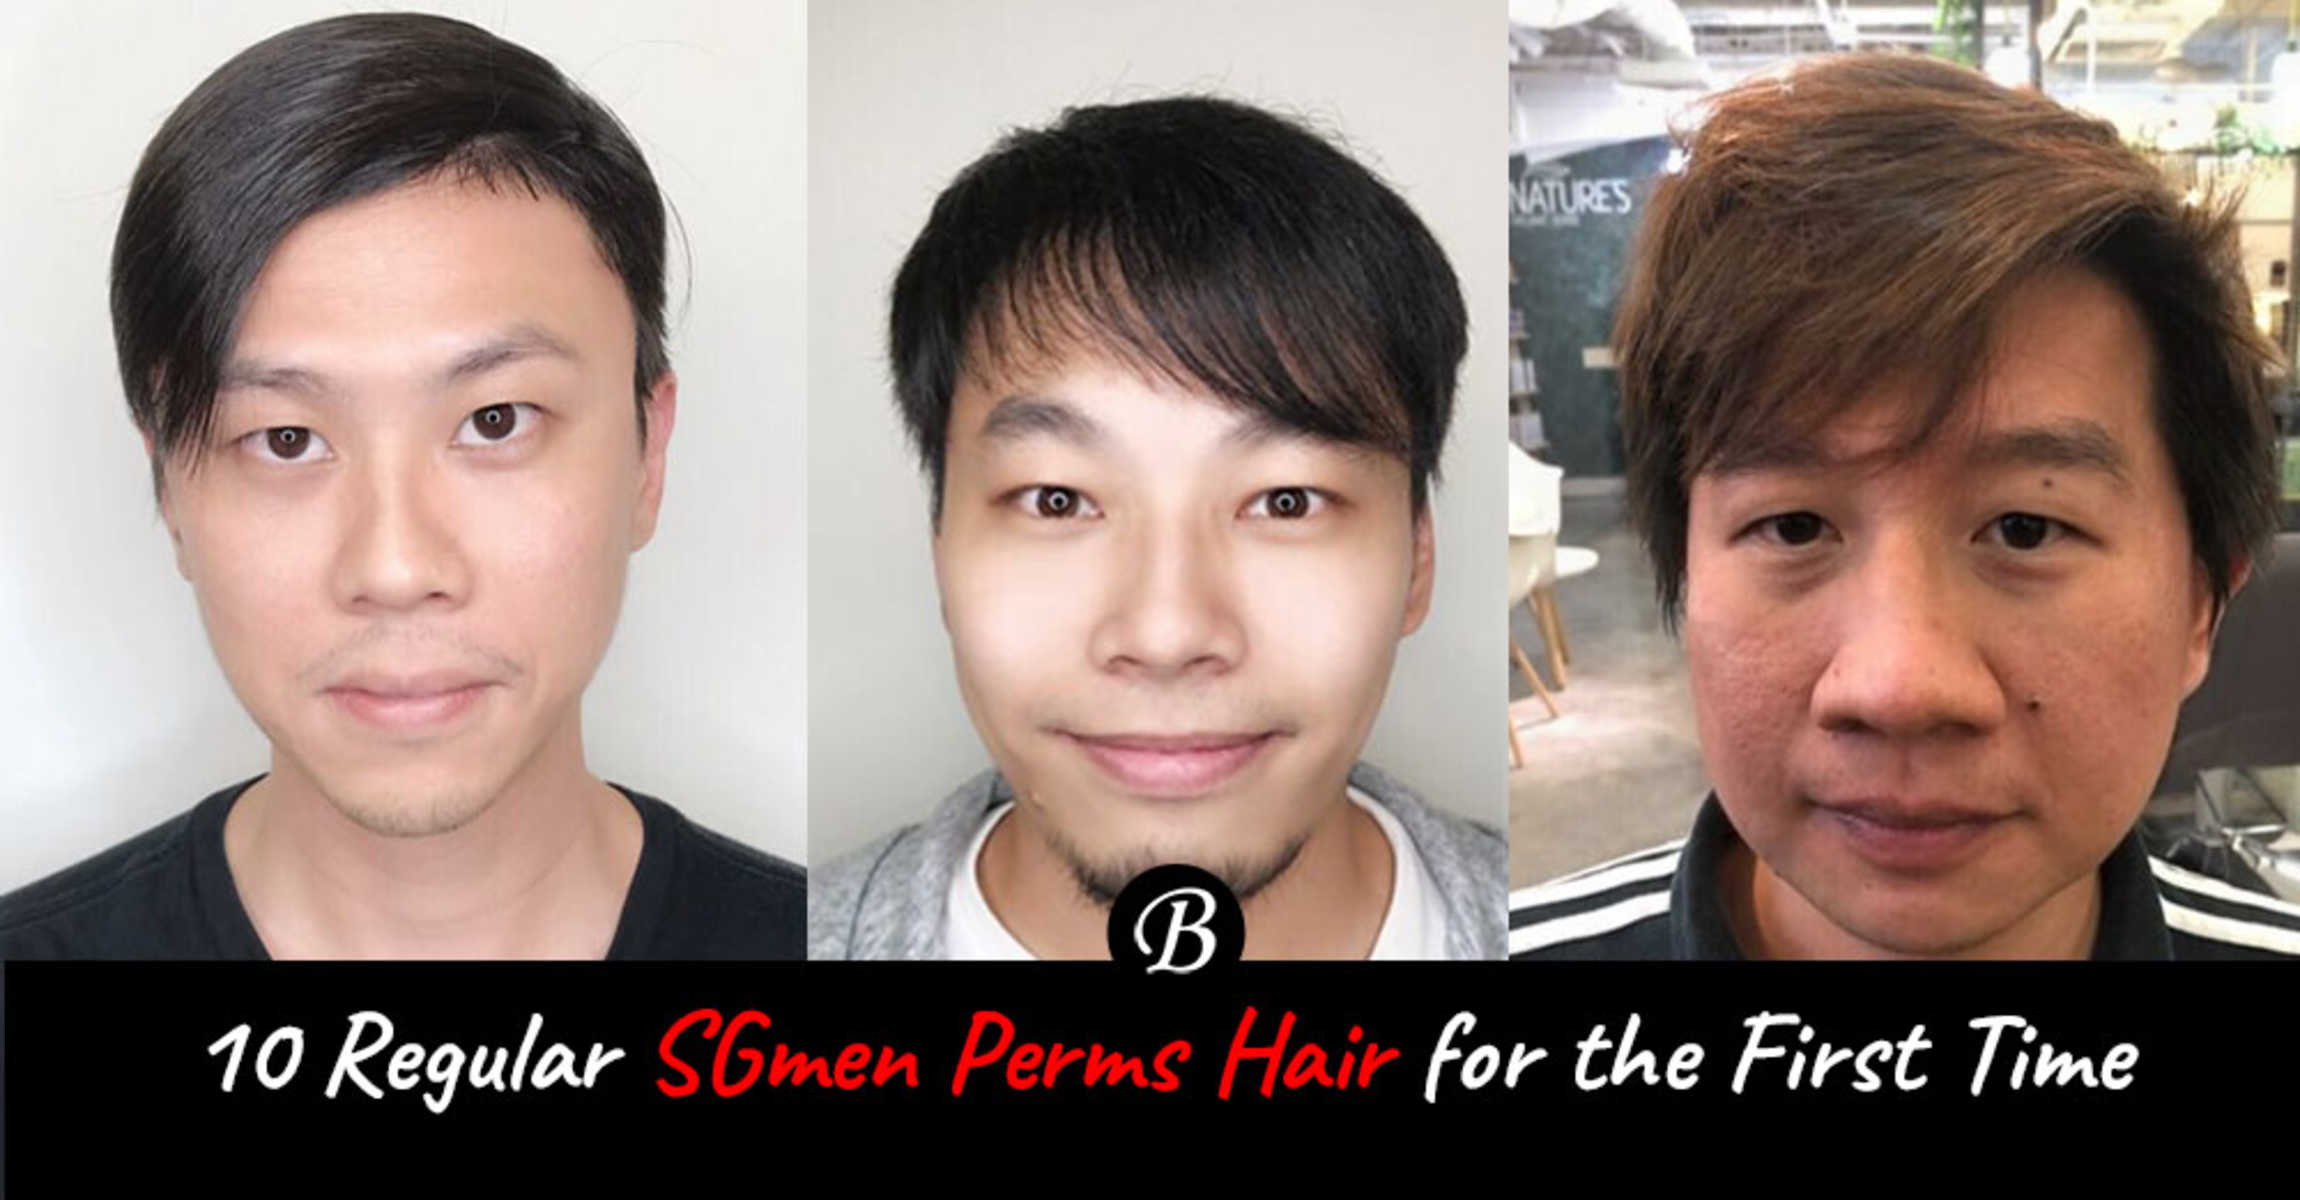 Men In Singapore Tried Men S Perm And Here Are The Results